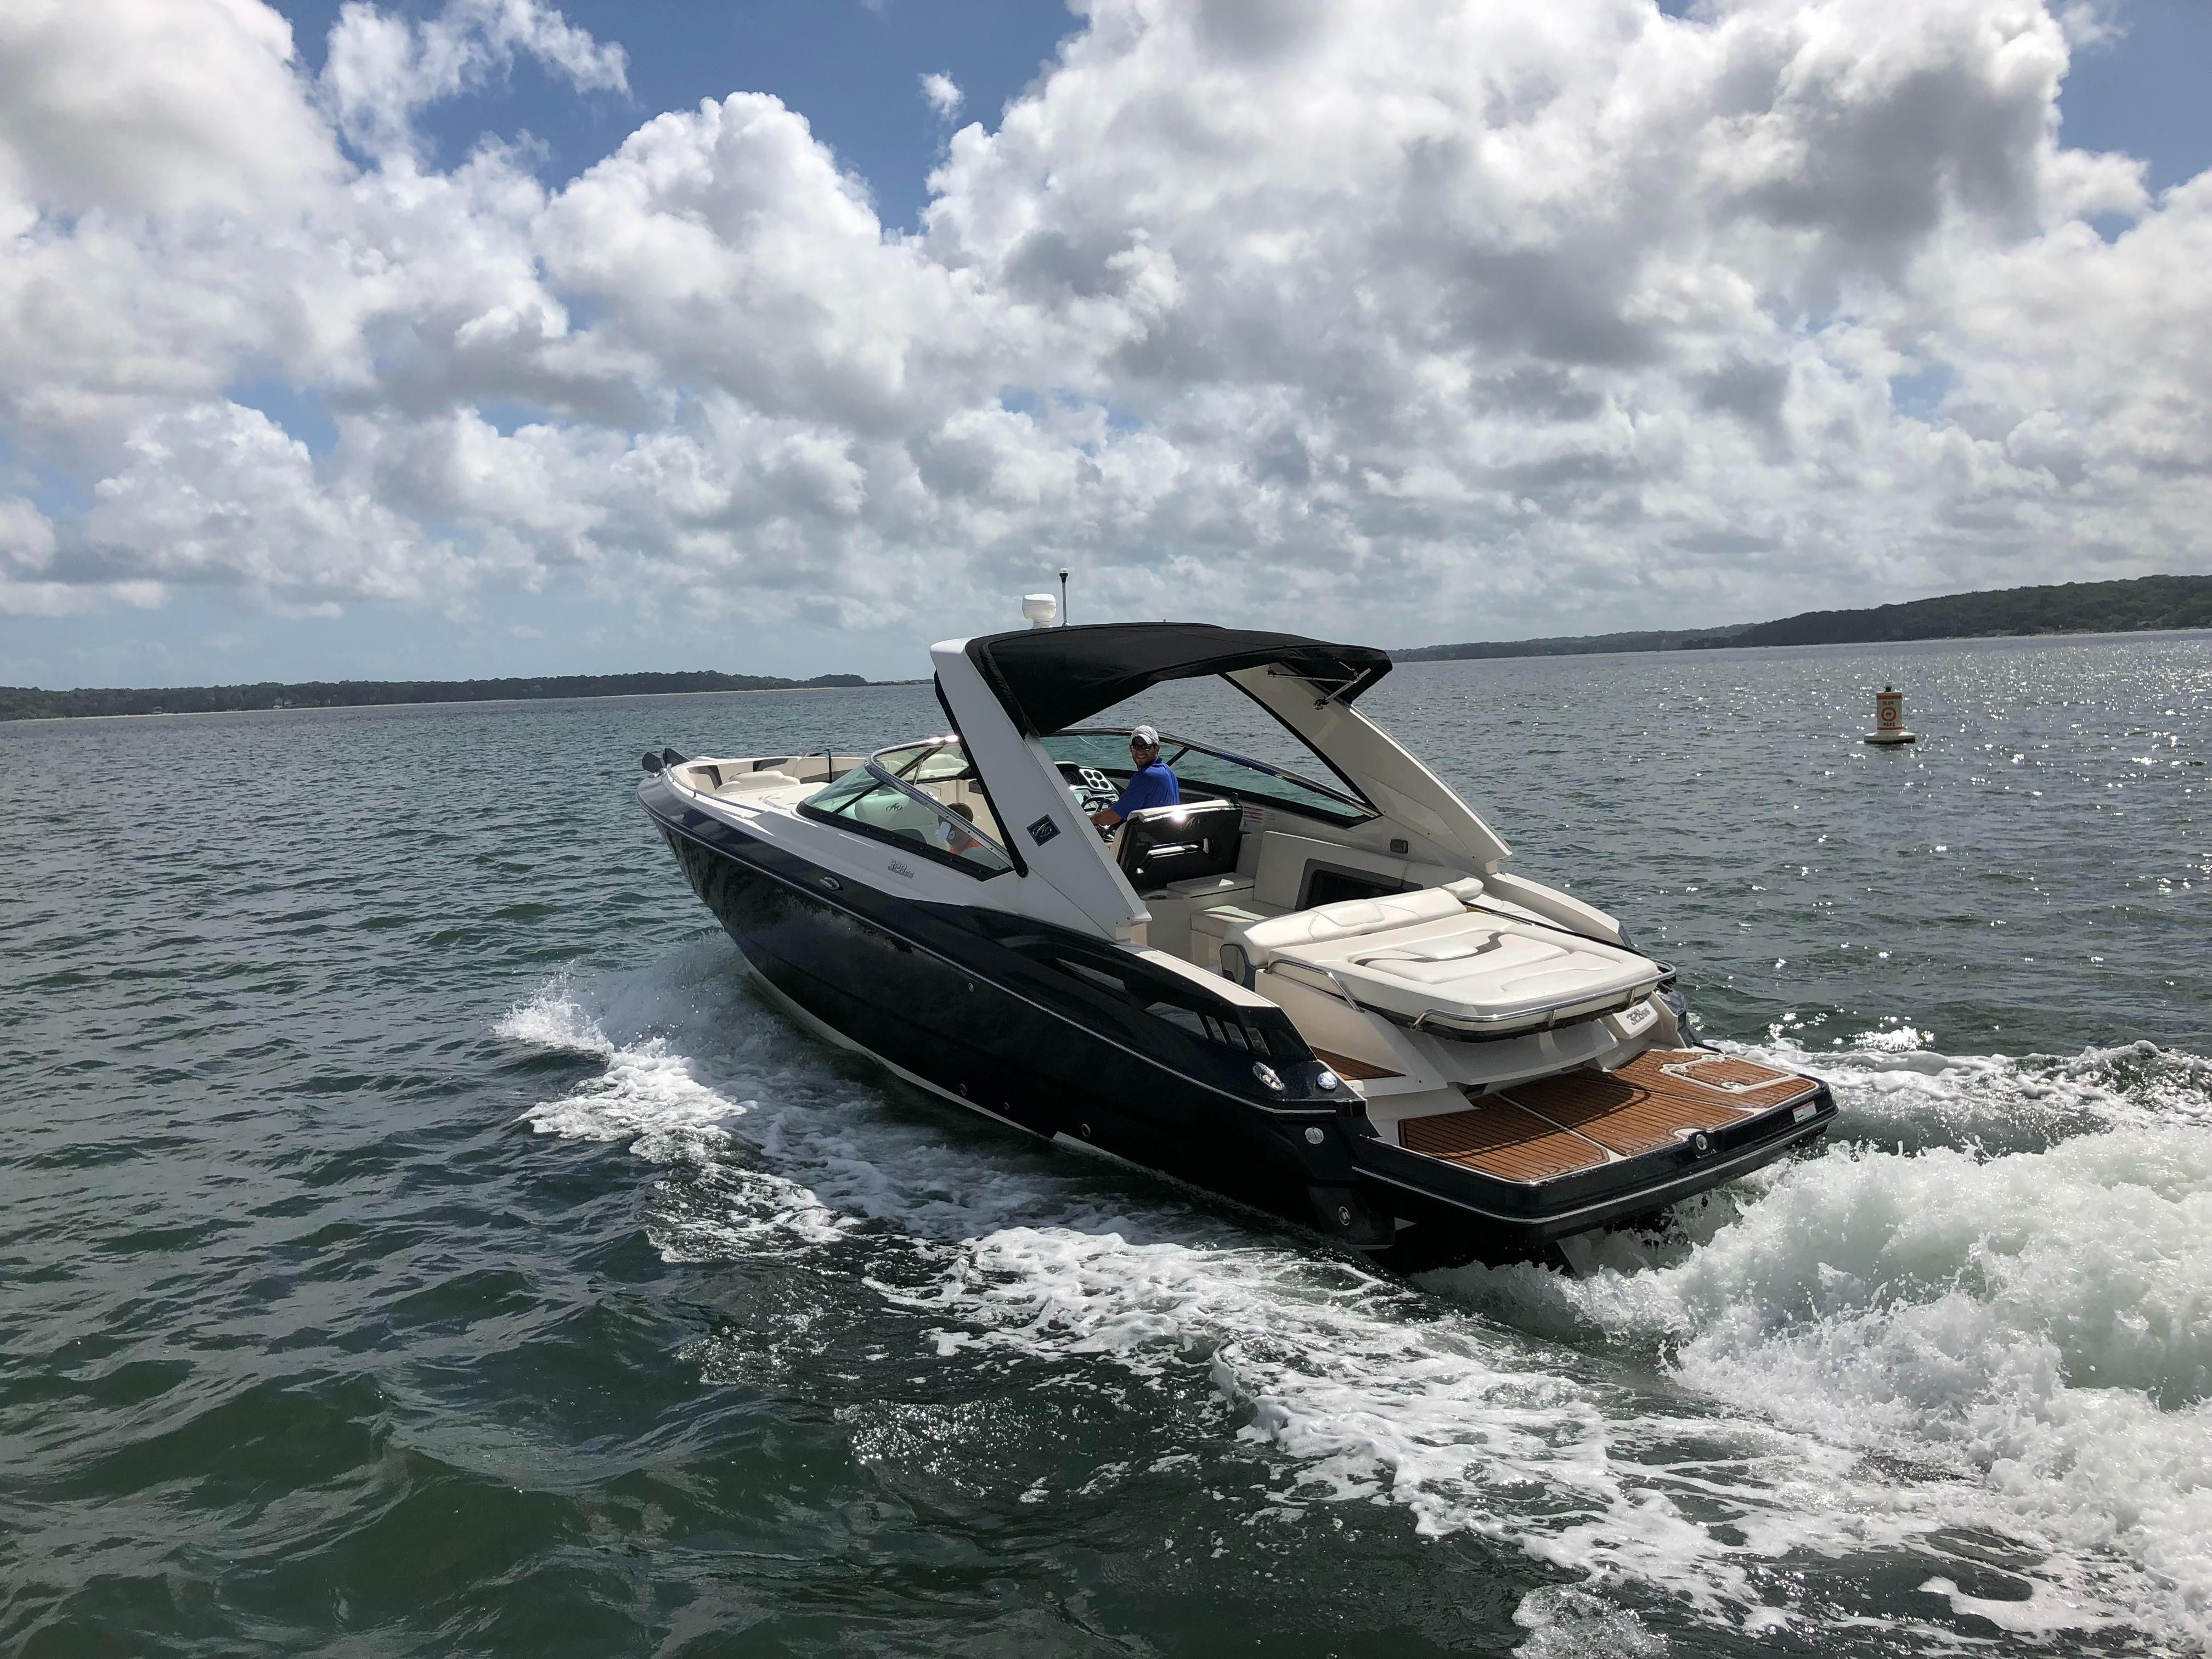 Volvo Dealers In Ct >> 2013 Monterey 328 Super Sport Power New and Used Boats for ...